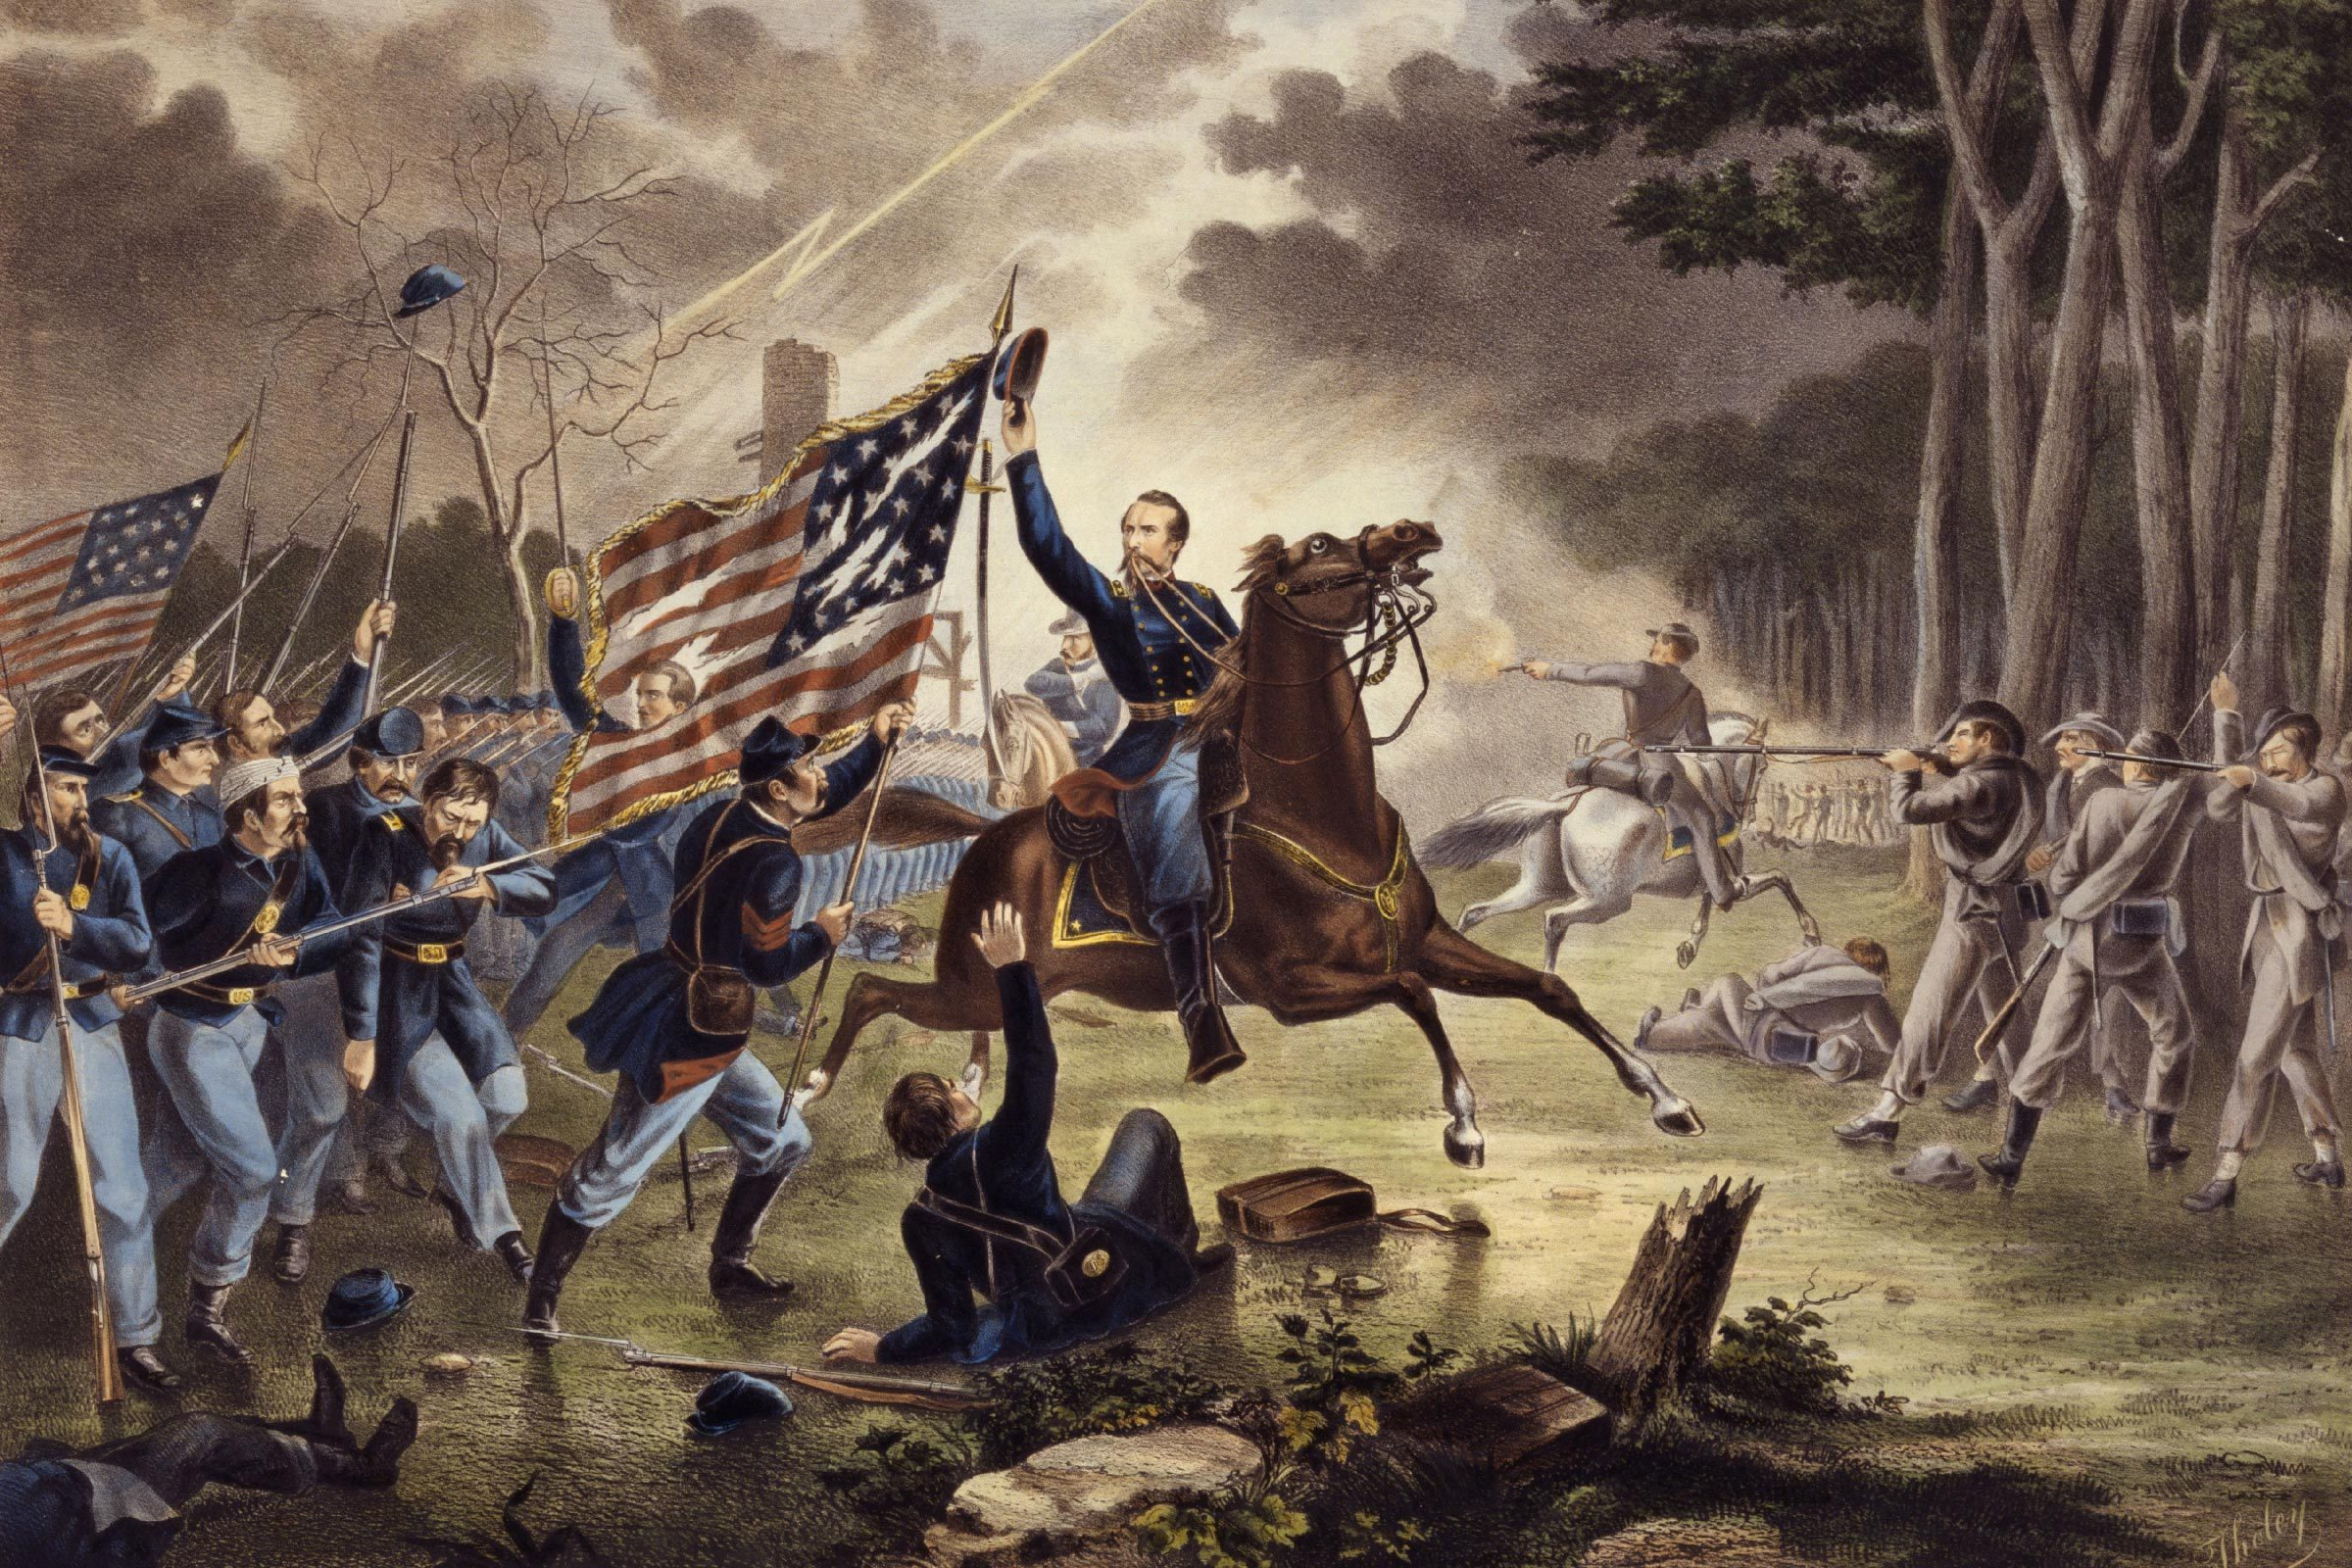 American Civil War 1861-1865: General Kearney's gallant charge, Battle of Chantilly (Ox Hill), Virginia, 1 September 1862. Kearny mistakenly rode into the Confederate lines and was killed. Confederate strategic victory. Print l867.